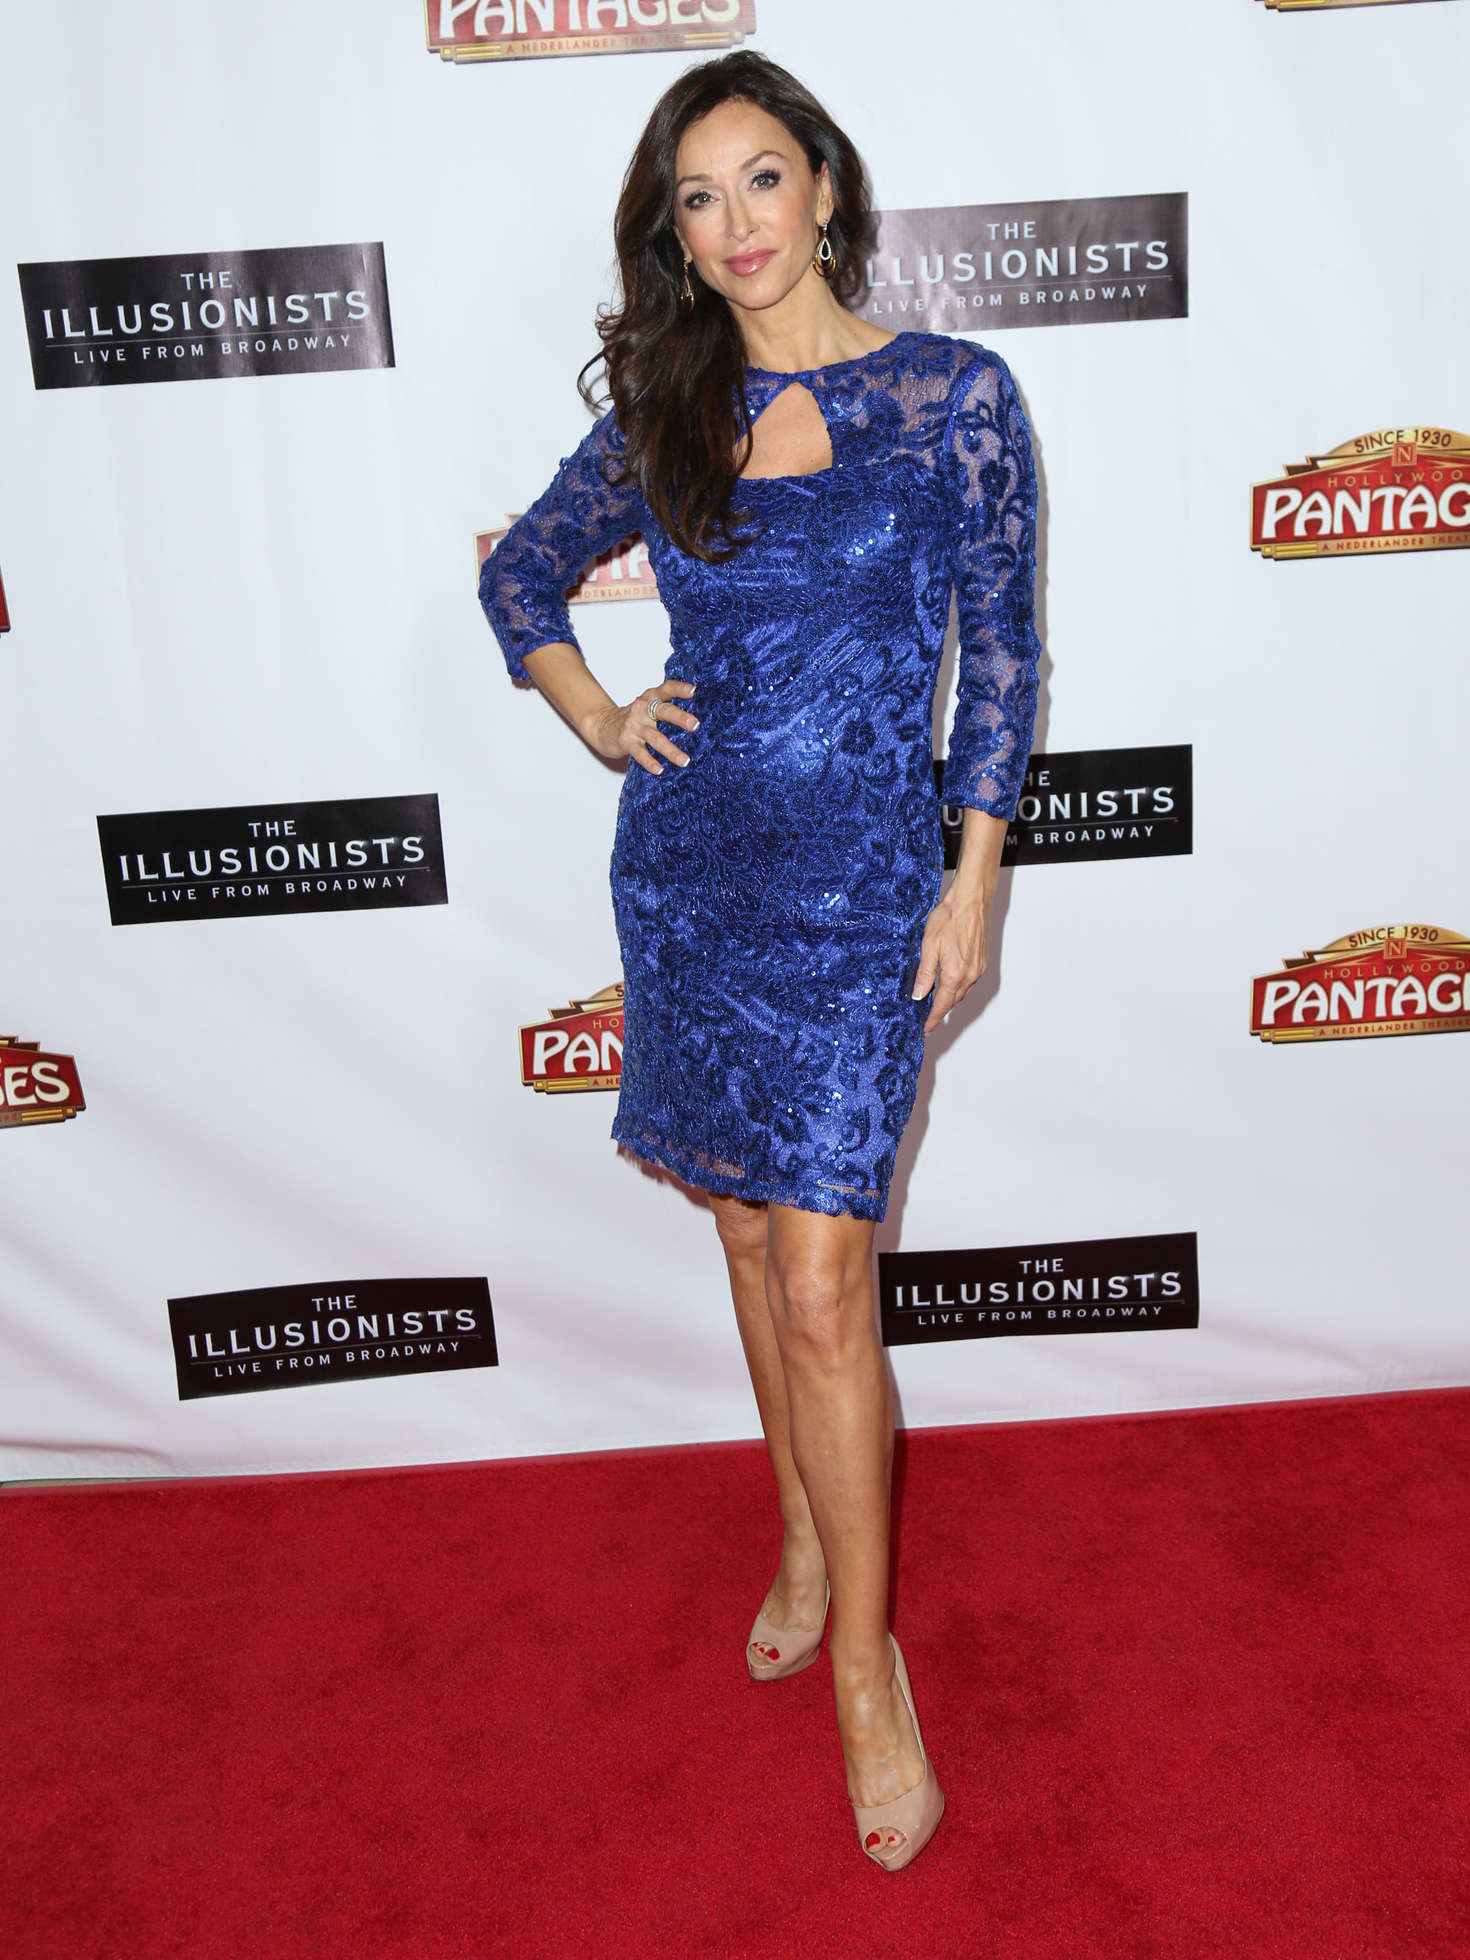 Sofia Milos - 'The Illusionists - Live From Broadway' Premiere in Los Angeles